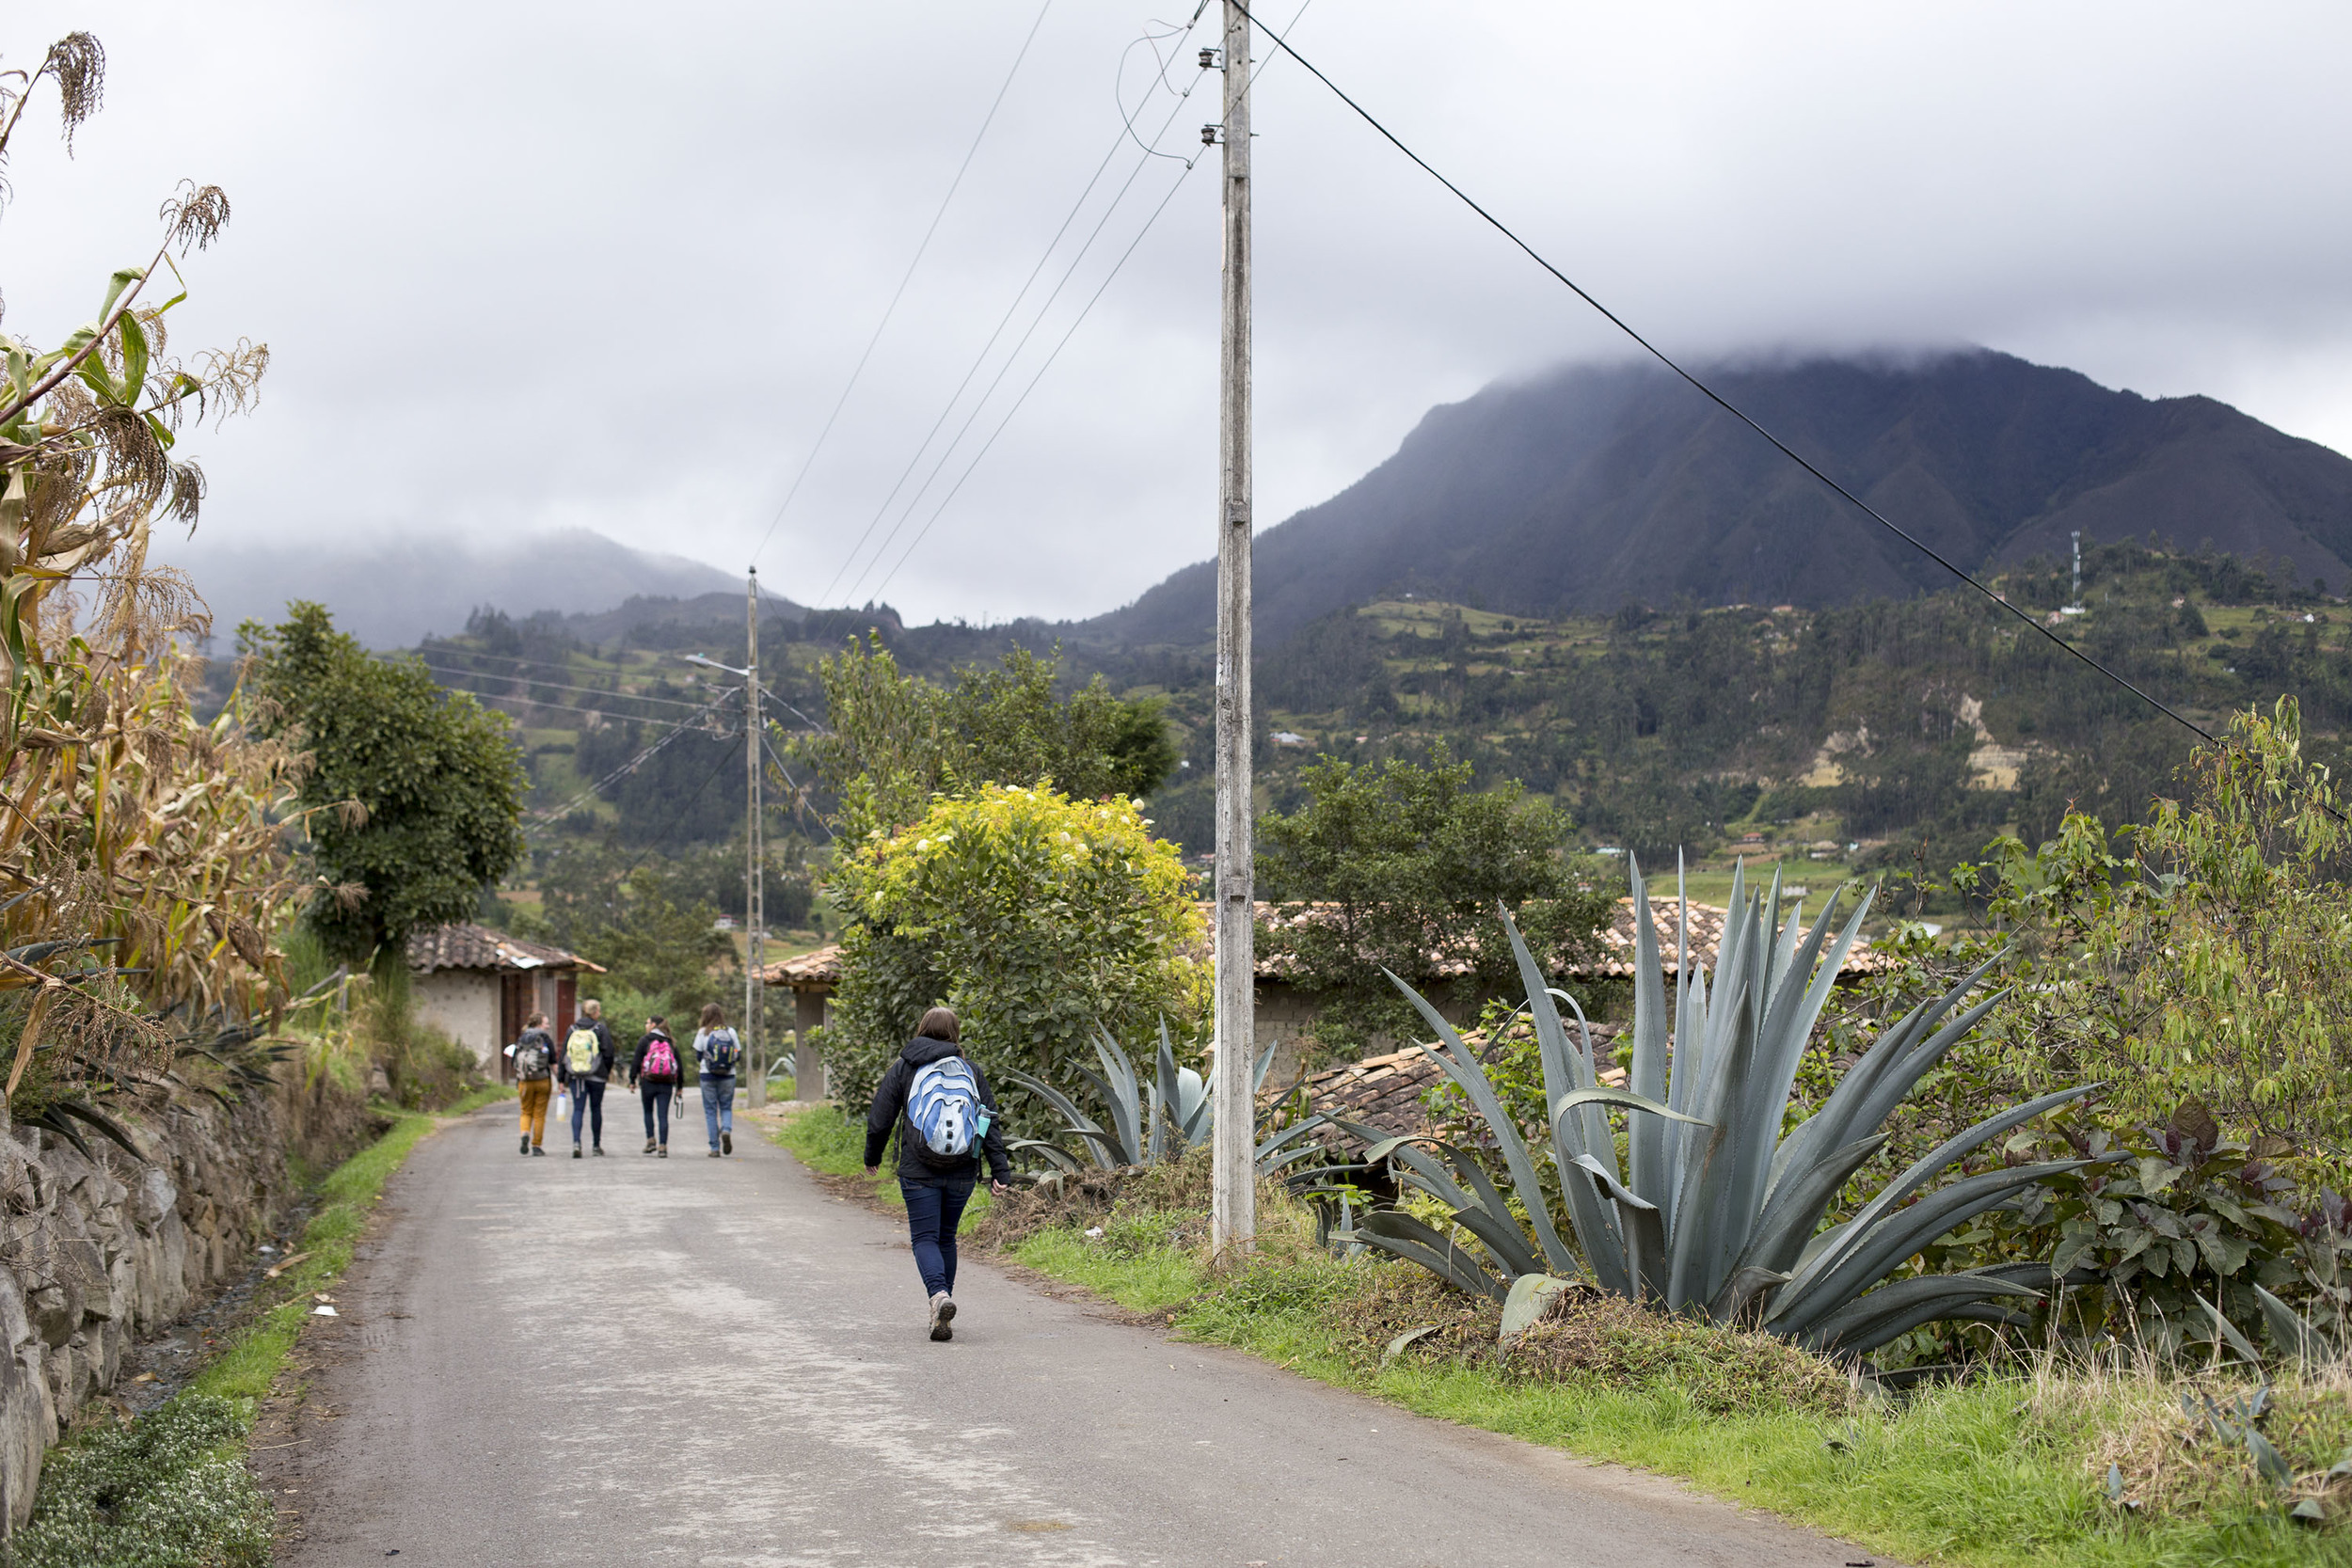 Walking through Ñamarin